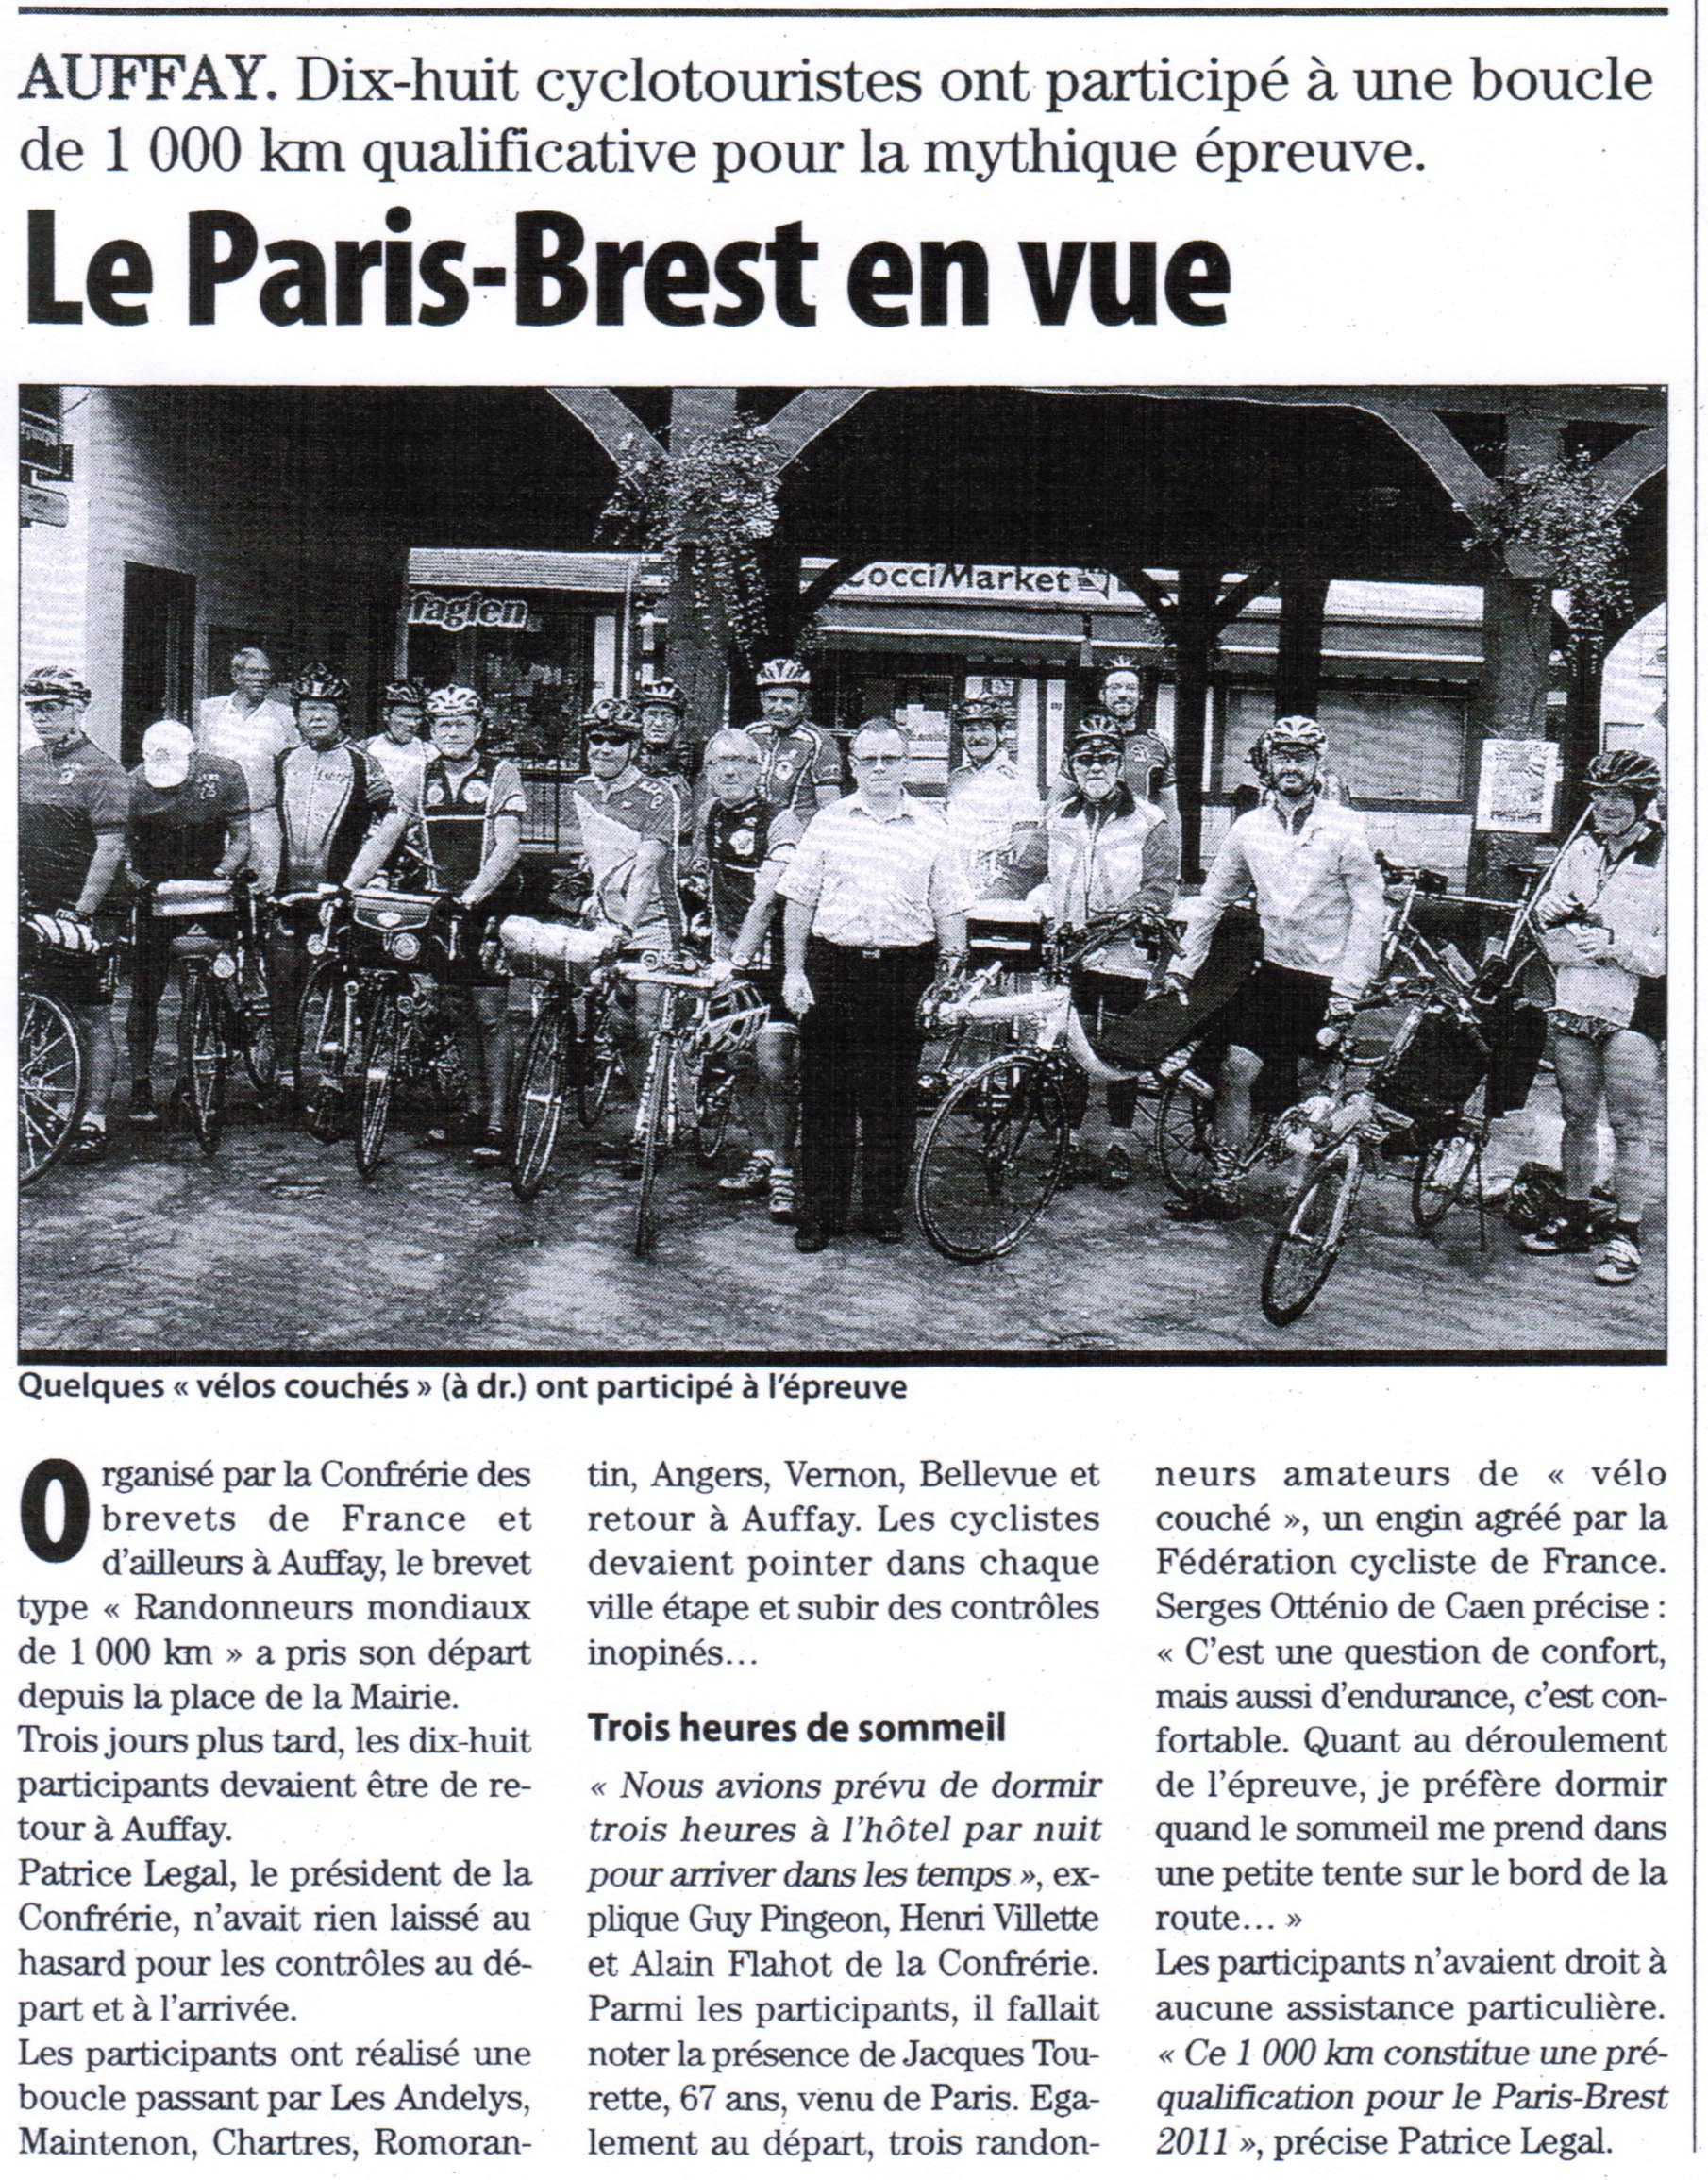 Article Paris-Normandie du 27 août 2010